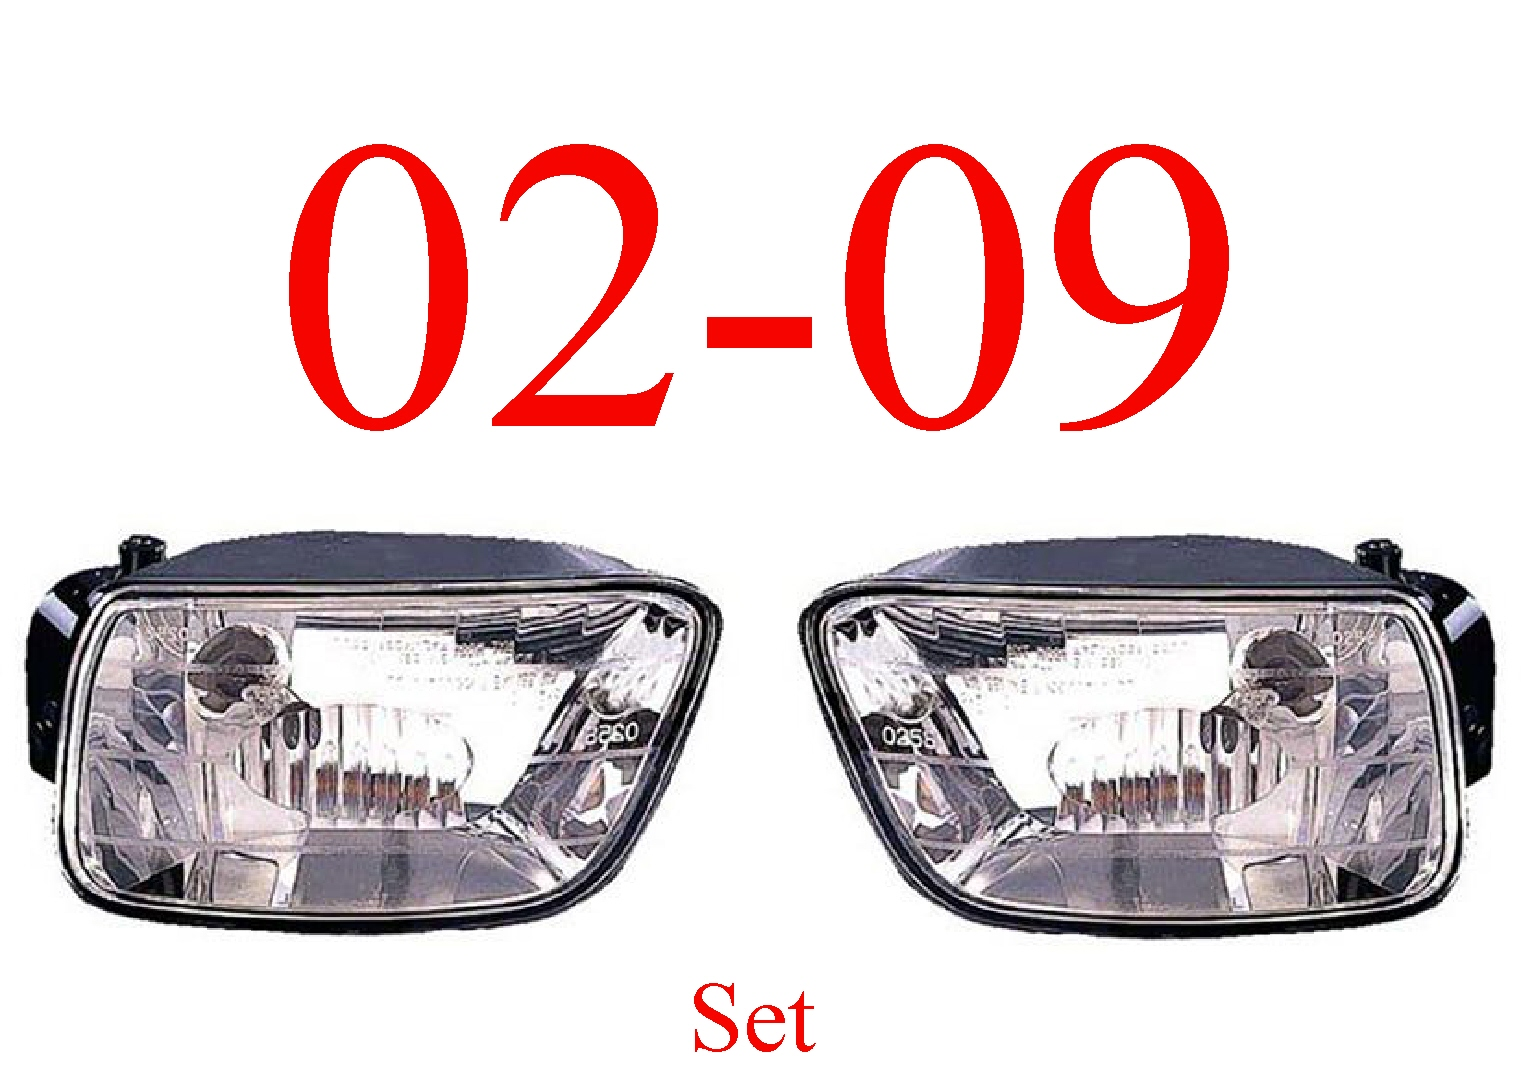 02-09 Trailblazer Fog Light Set, Assembly